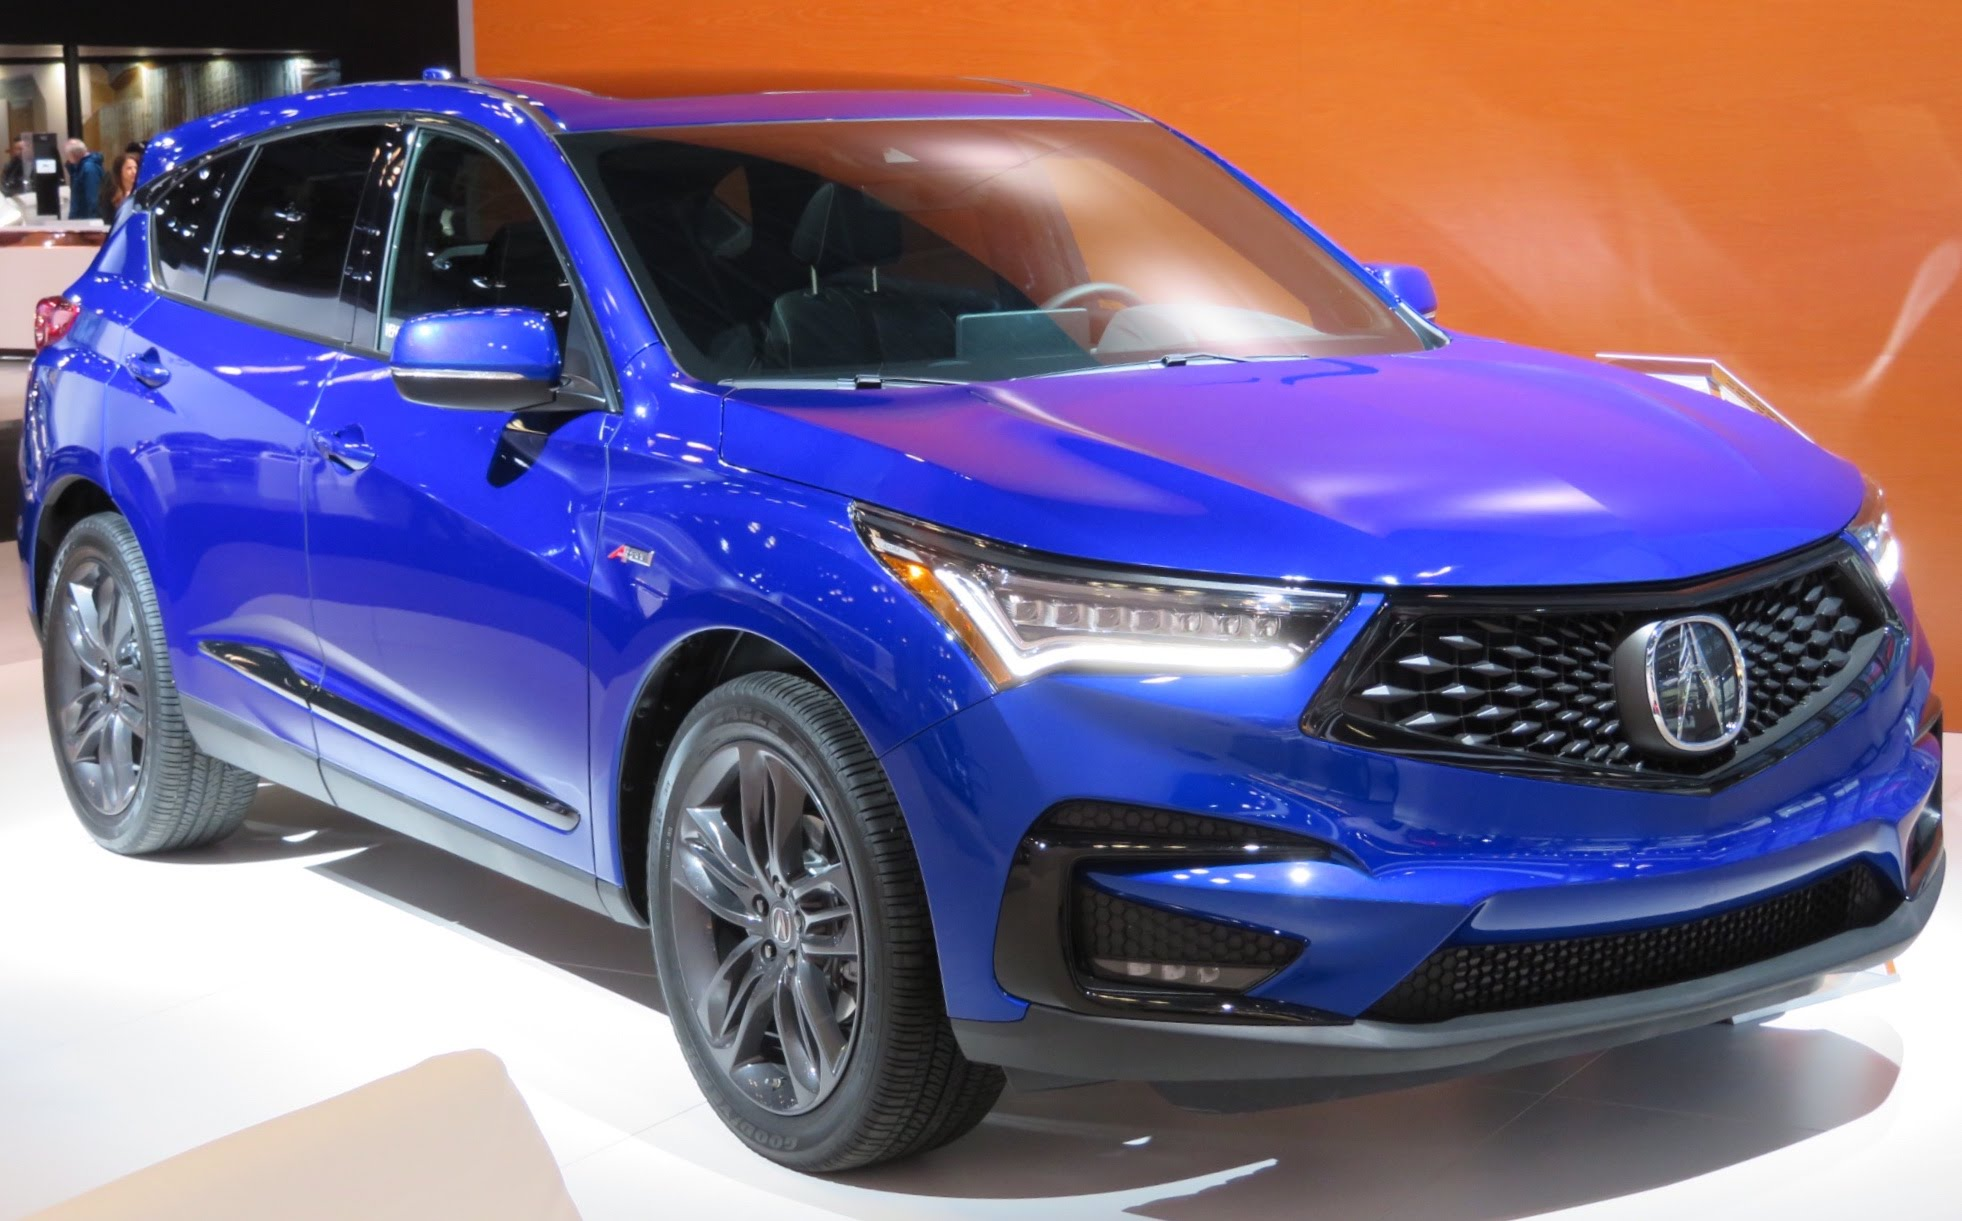 File 2019 Acura Rdx A Spec Front Blue 4 2 18 Jpg Wikimedia Commons